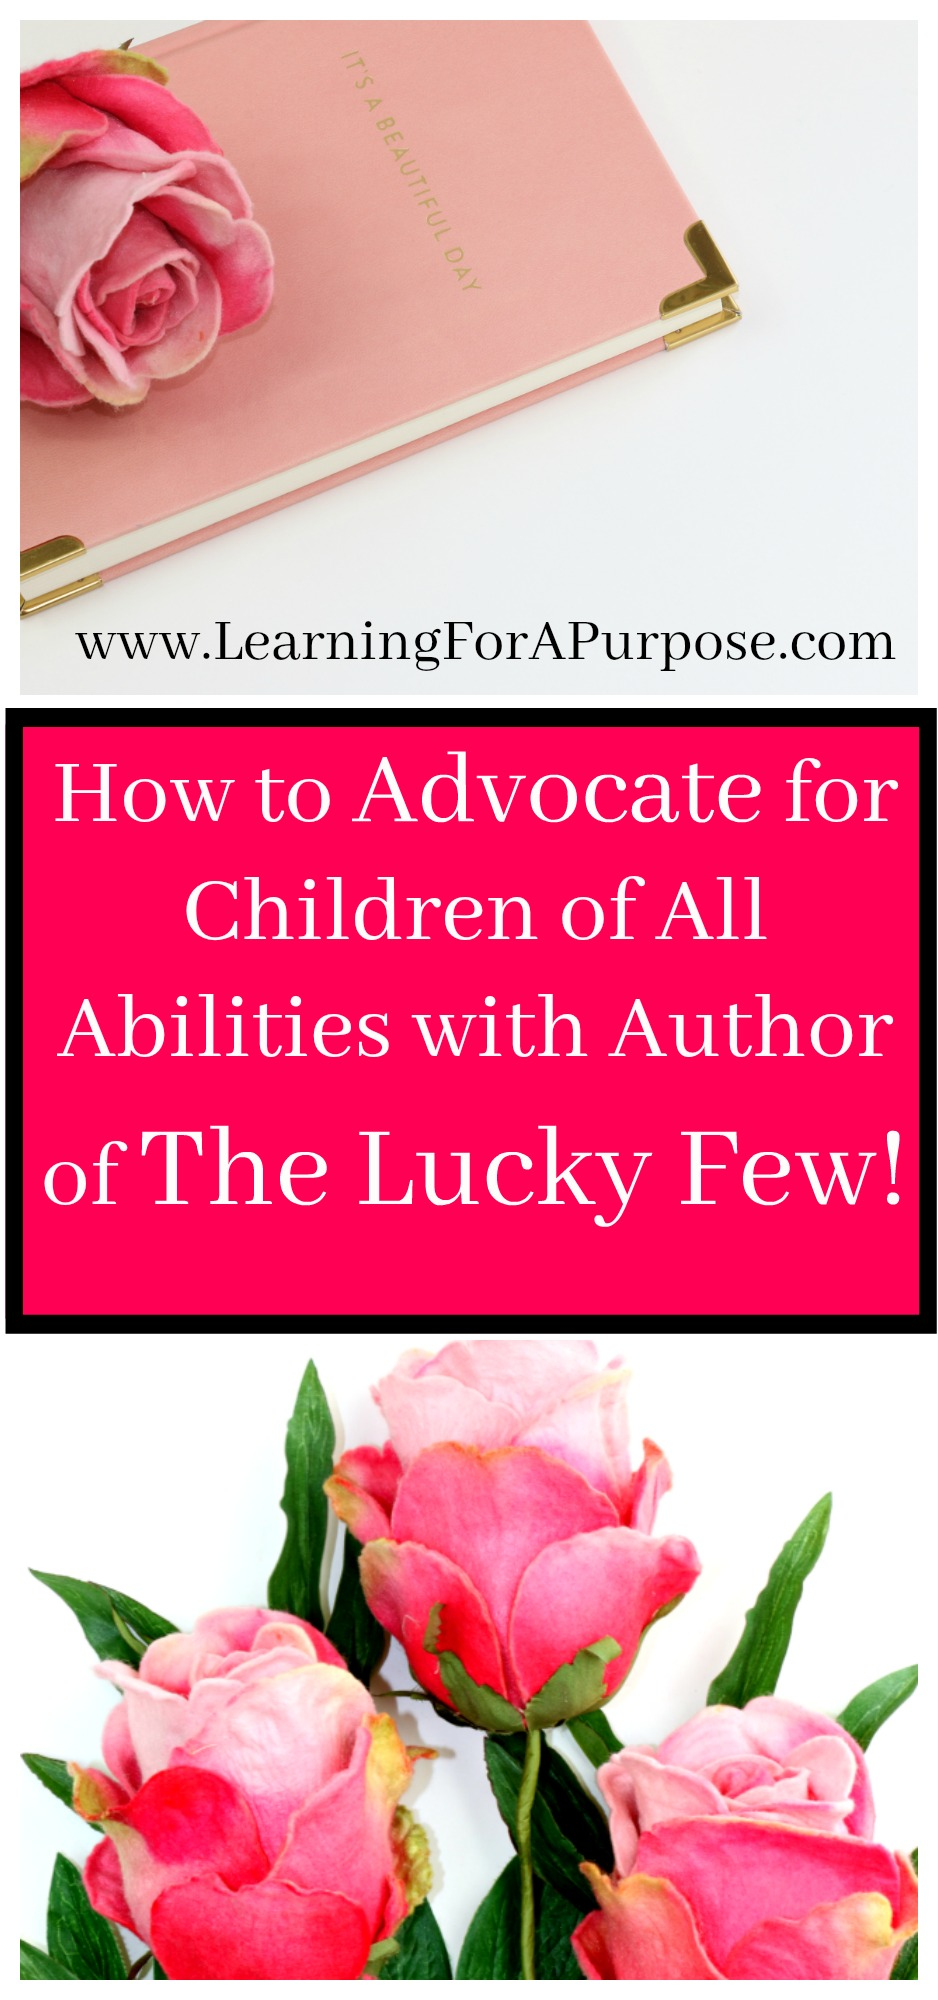 Advocate for Children of All Abilities